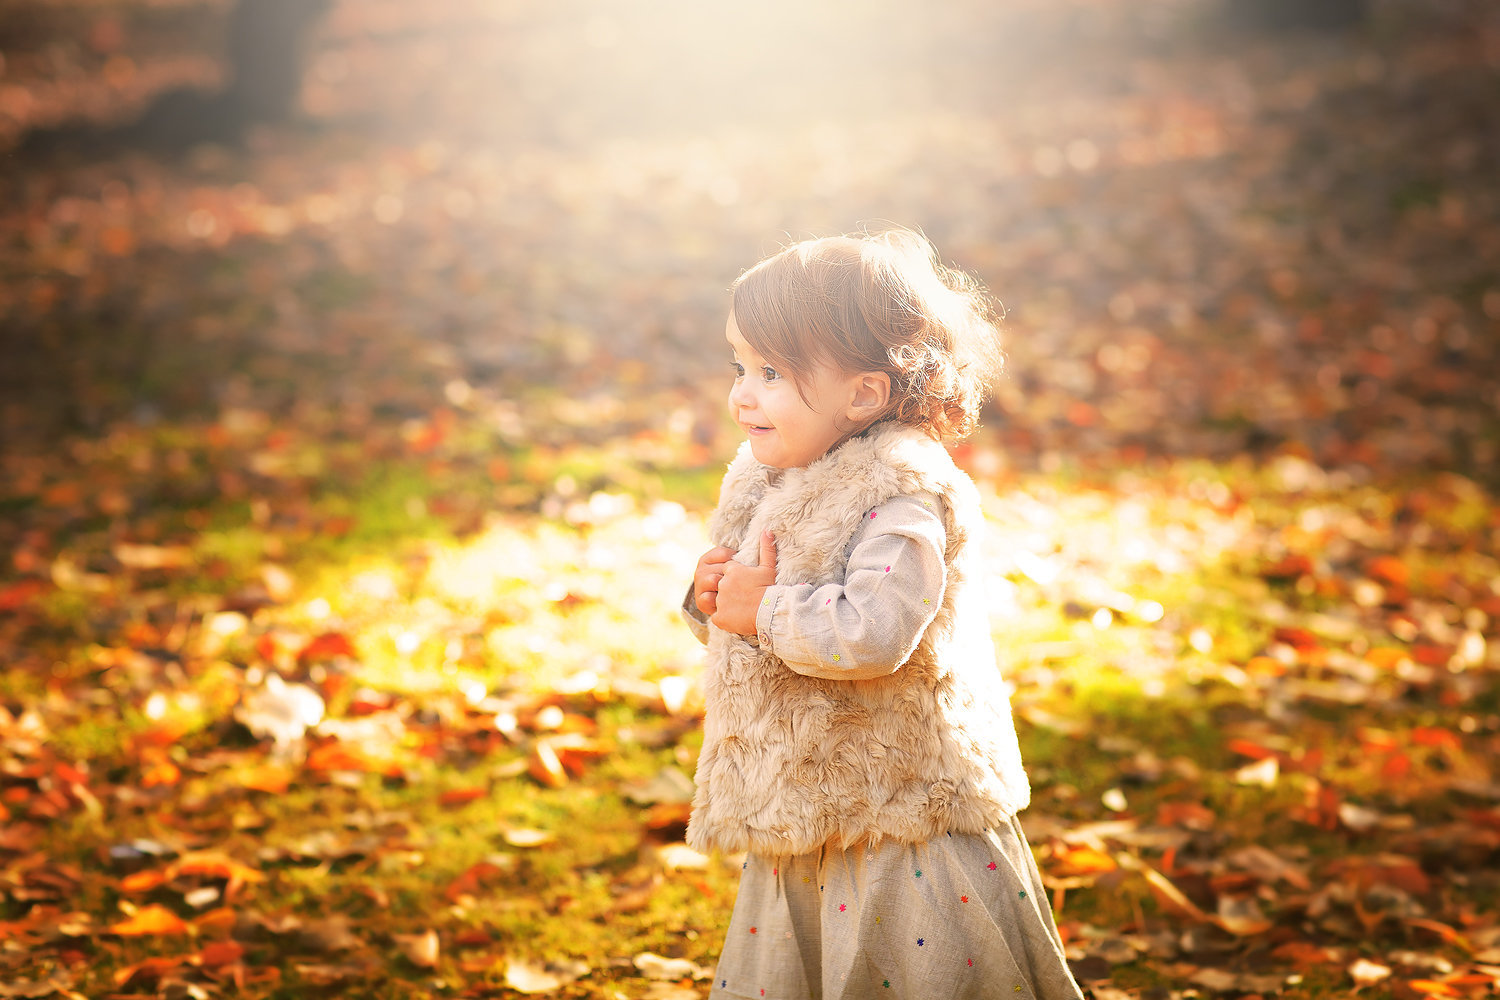 little girl autumn leaves sunlight